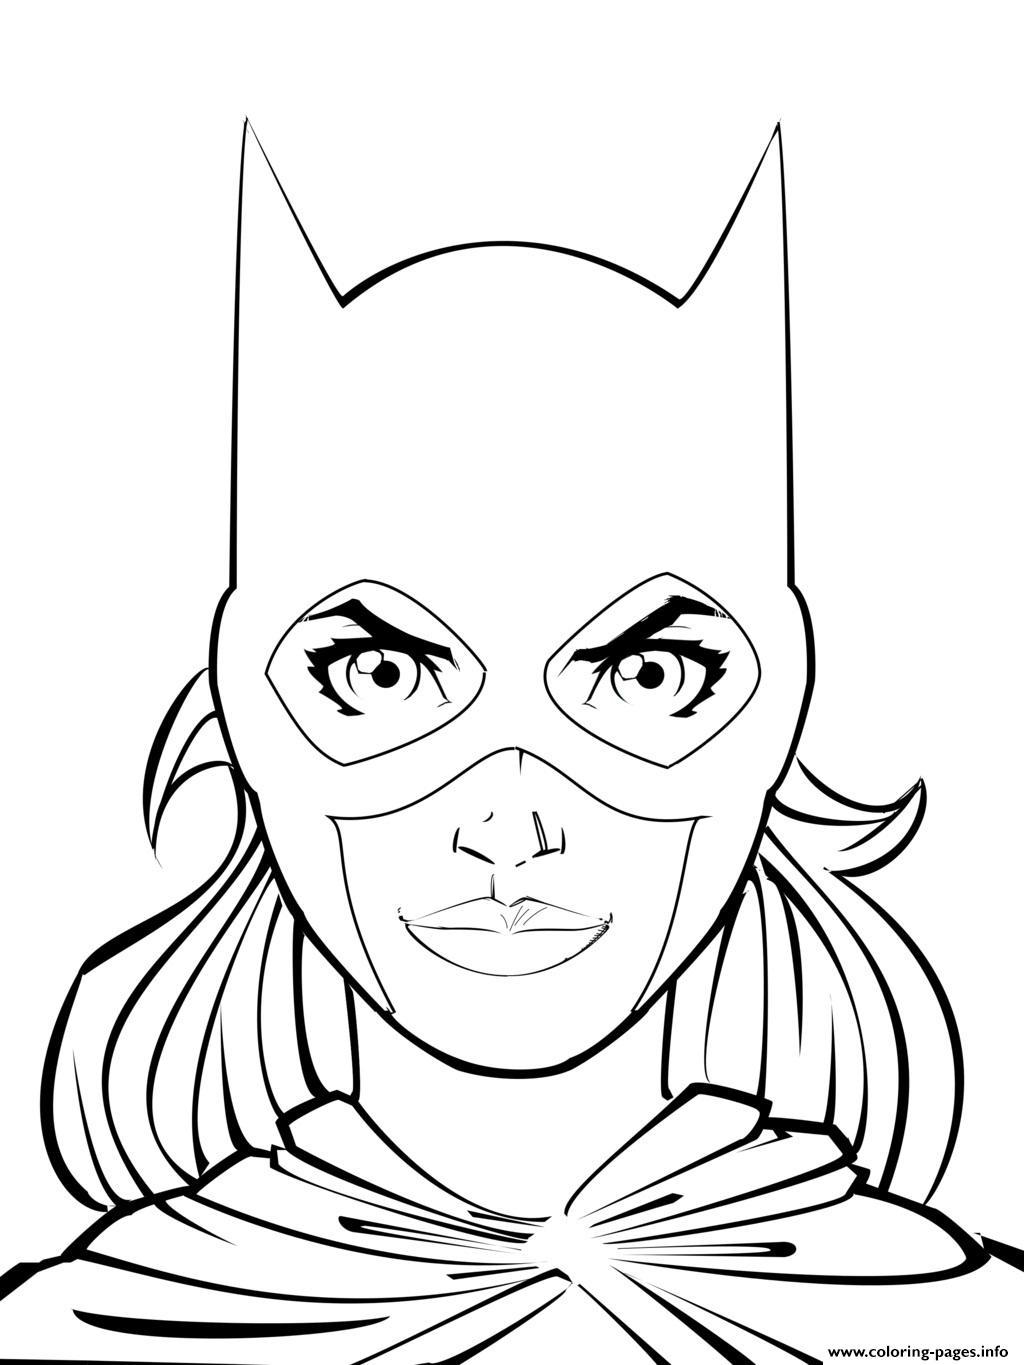 Coloring Pages : Coloring Pages Batgirl 1494022151supergirl ...